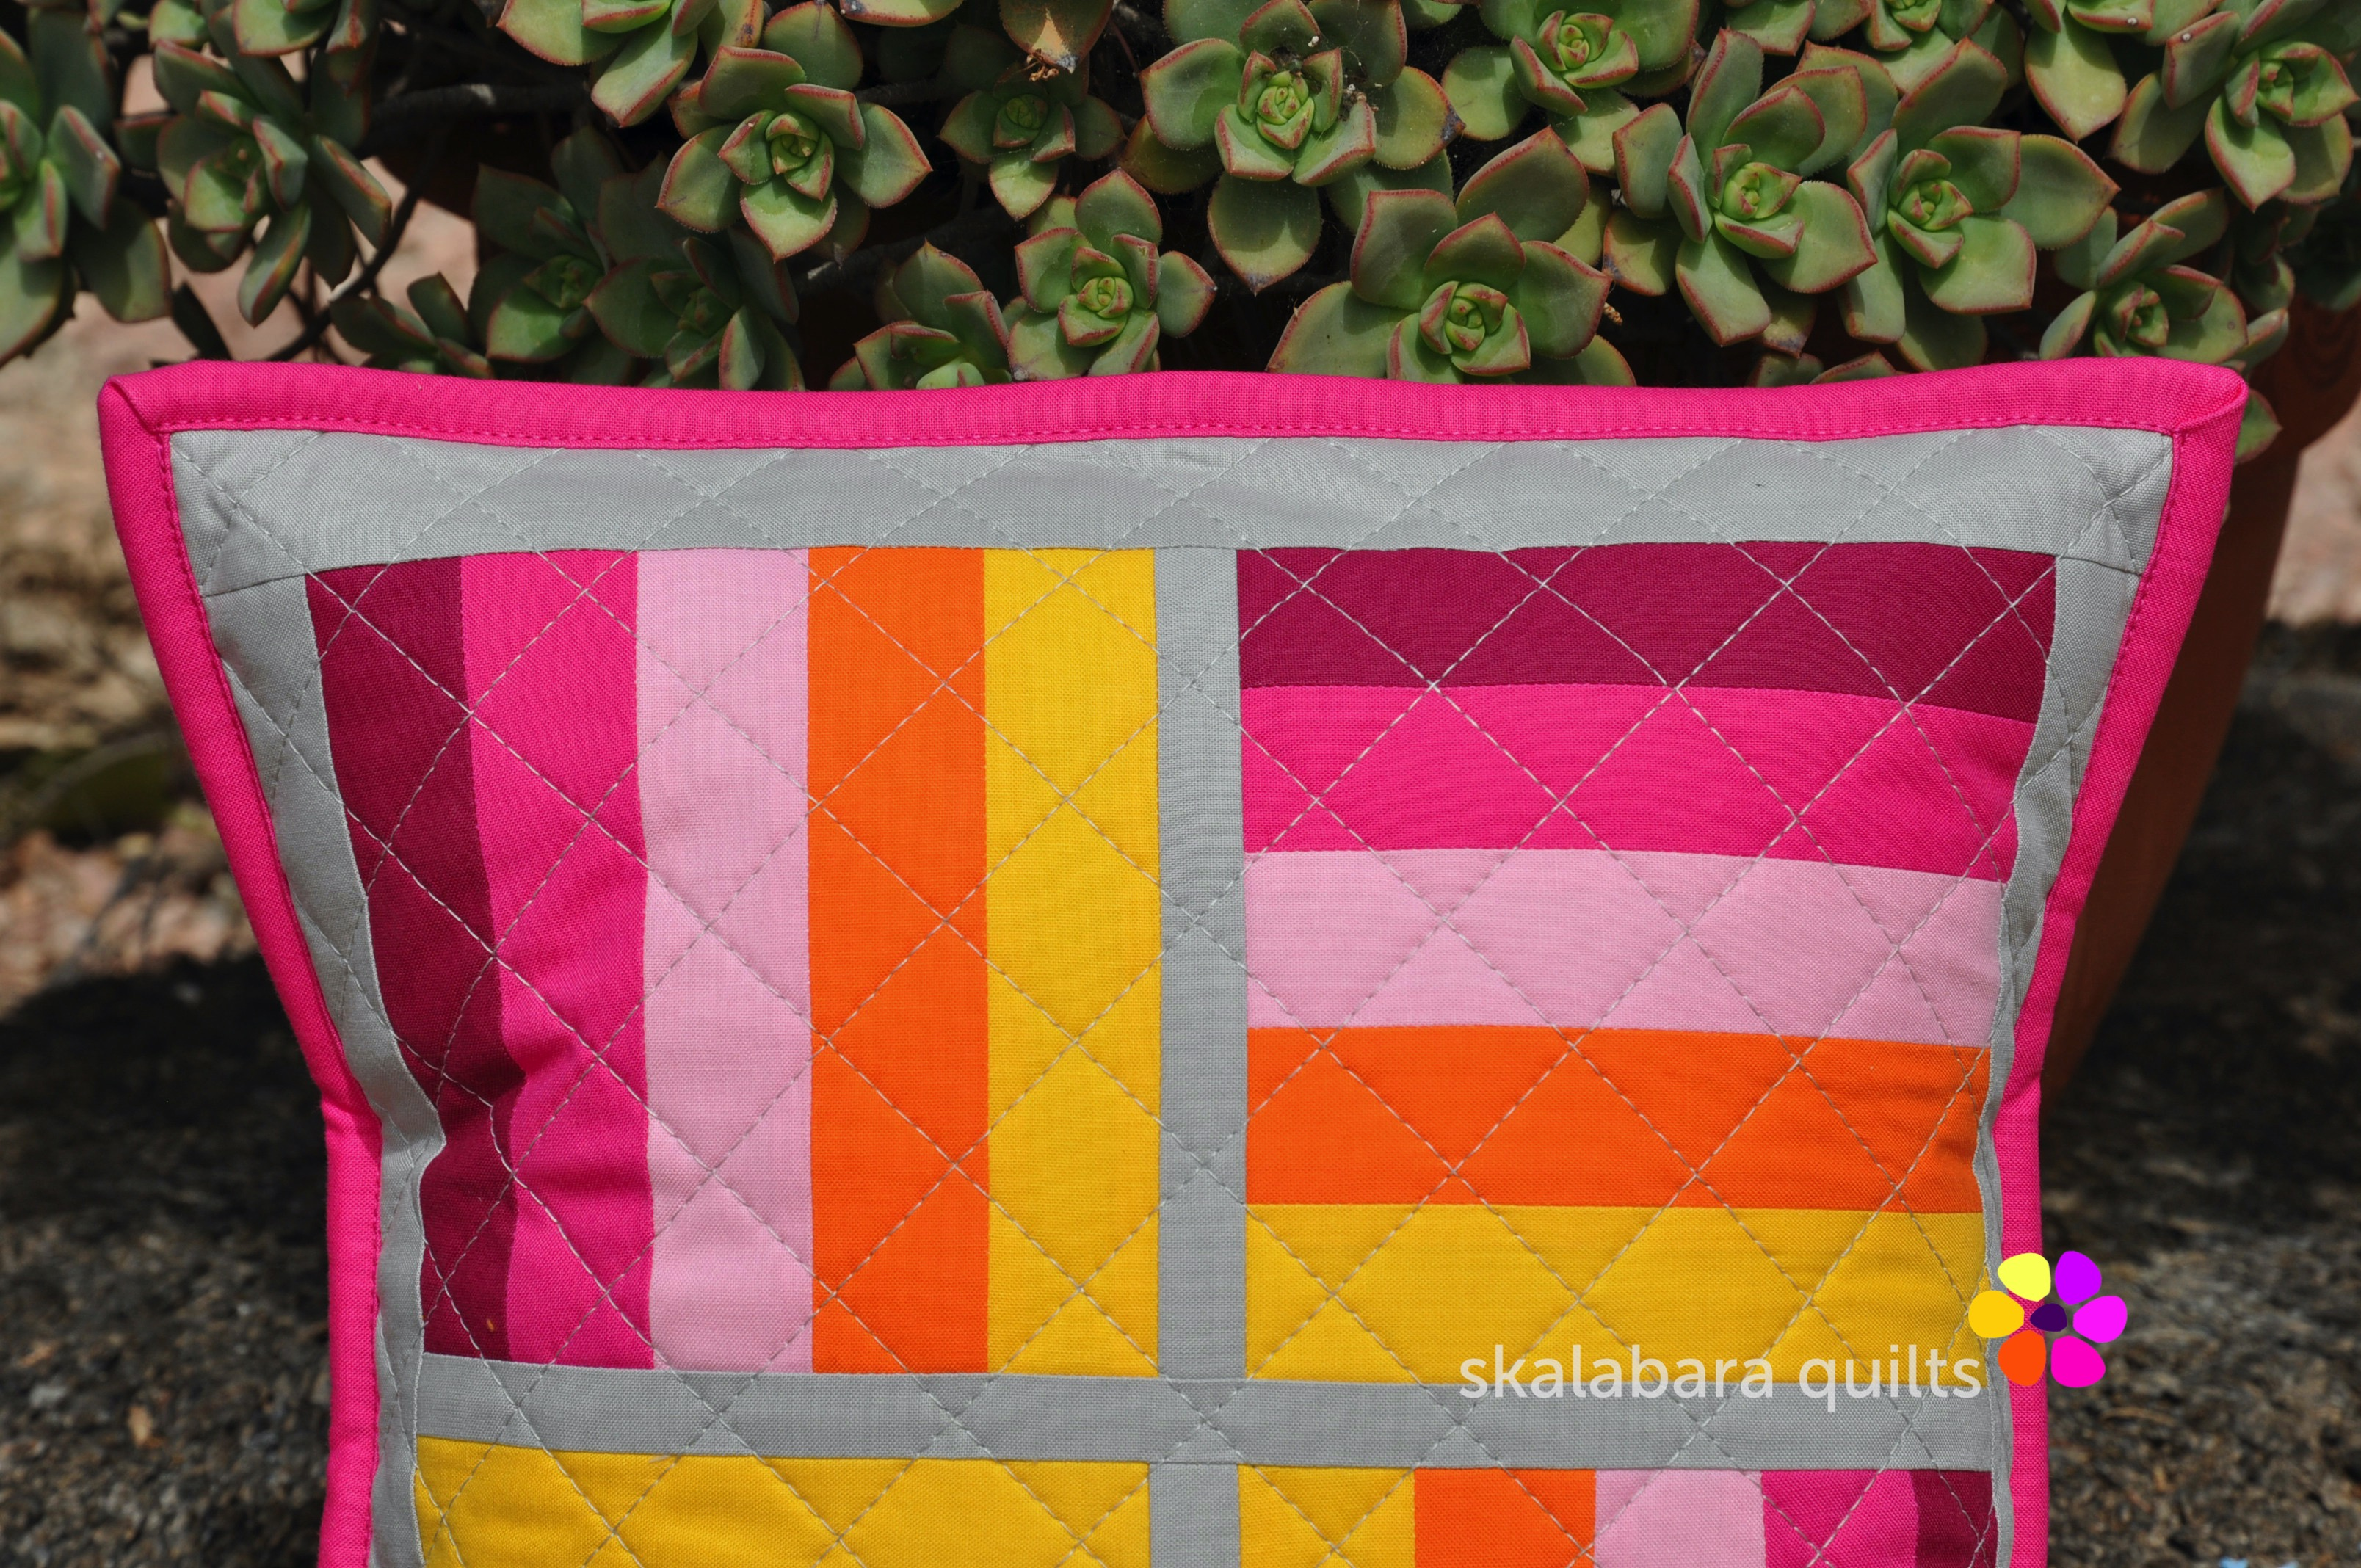 april pinkie cushions detail 1 - skalabara quilts